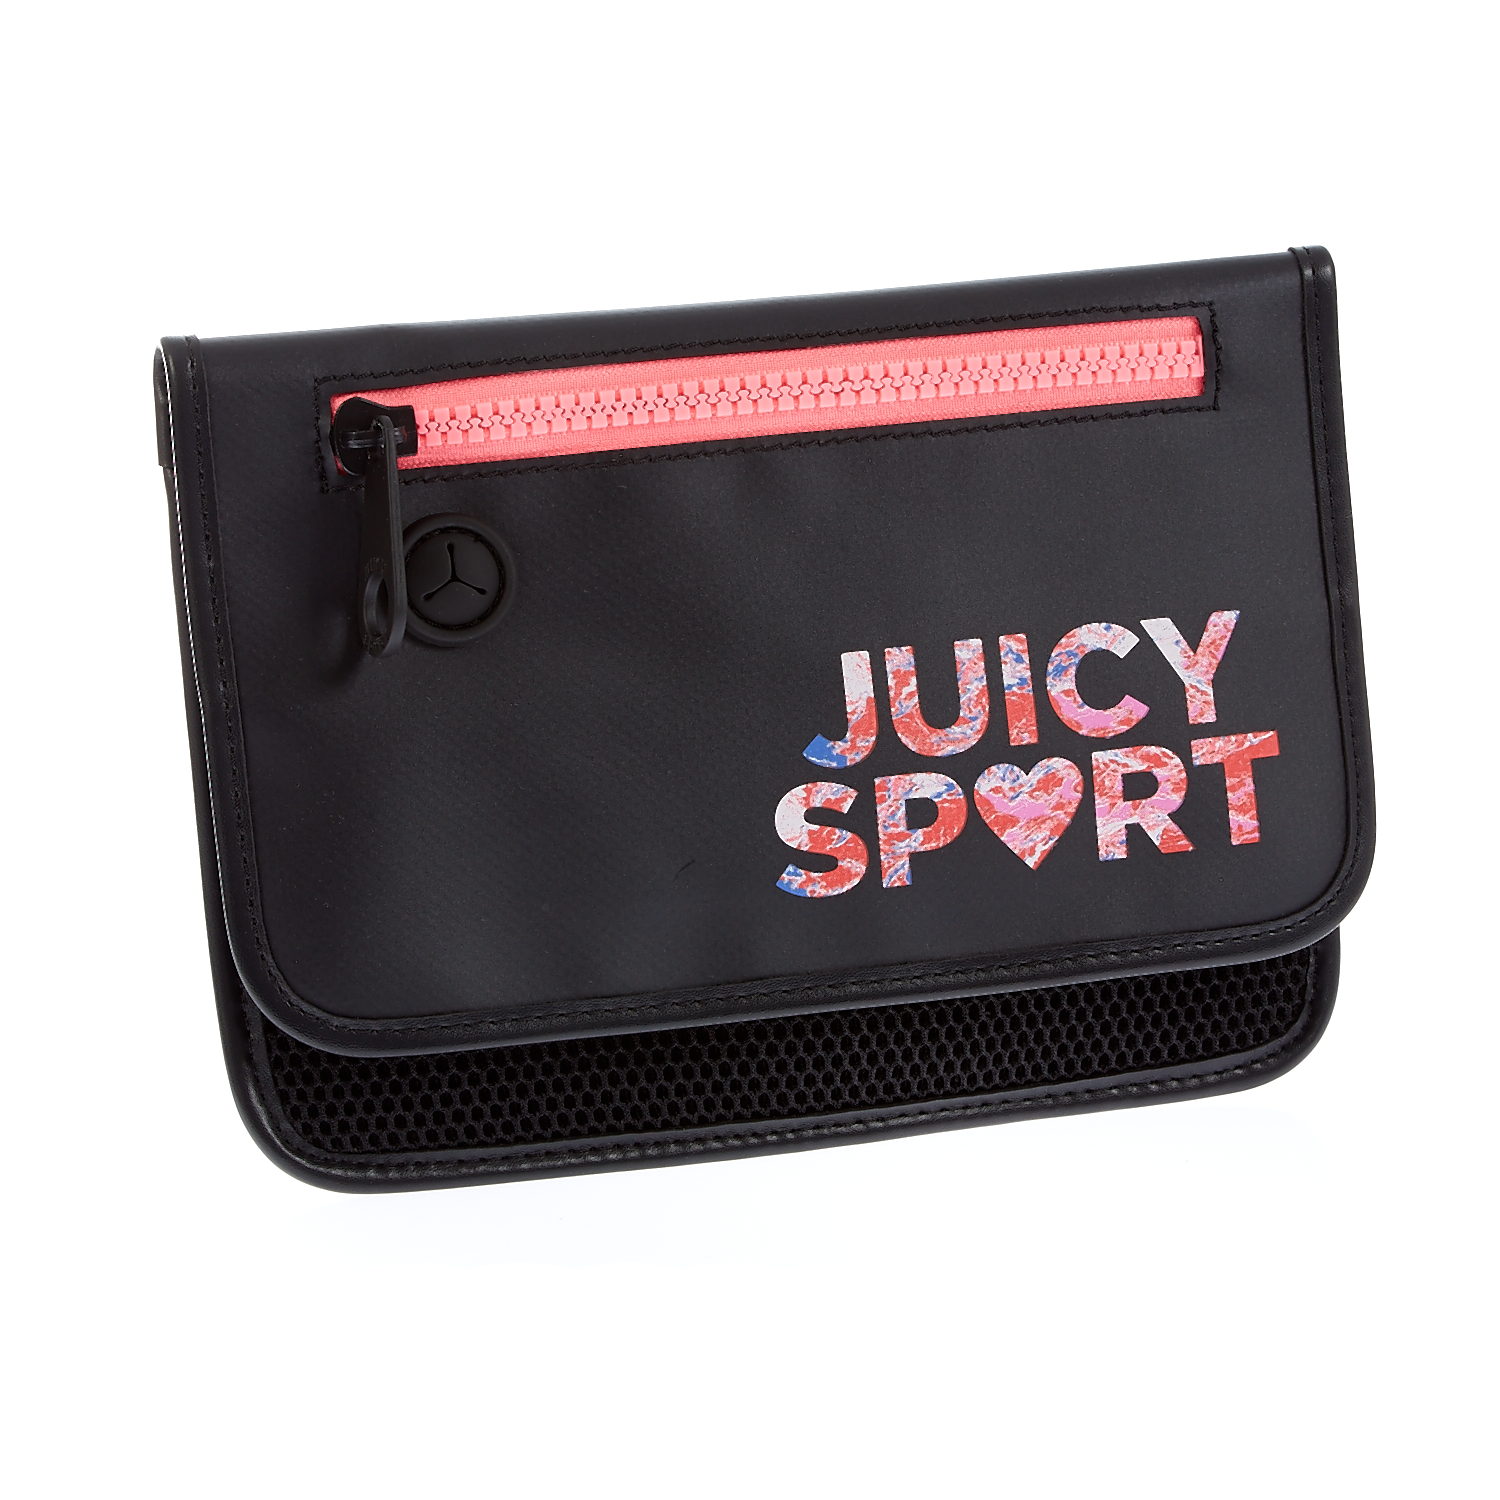 JUICY COUTURE – Γυναικείο τσαντάκι Juicy Couture μαύρο 1409712.0-0071